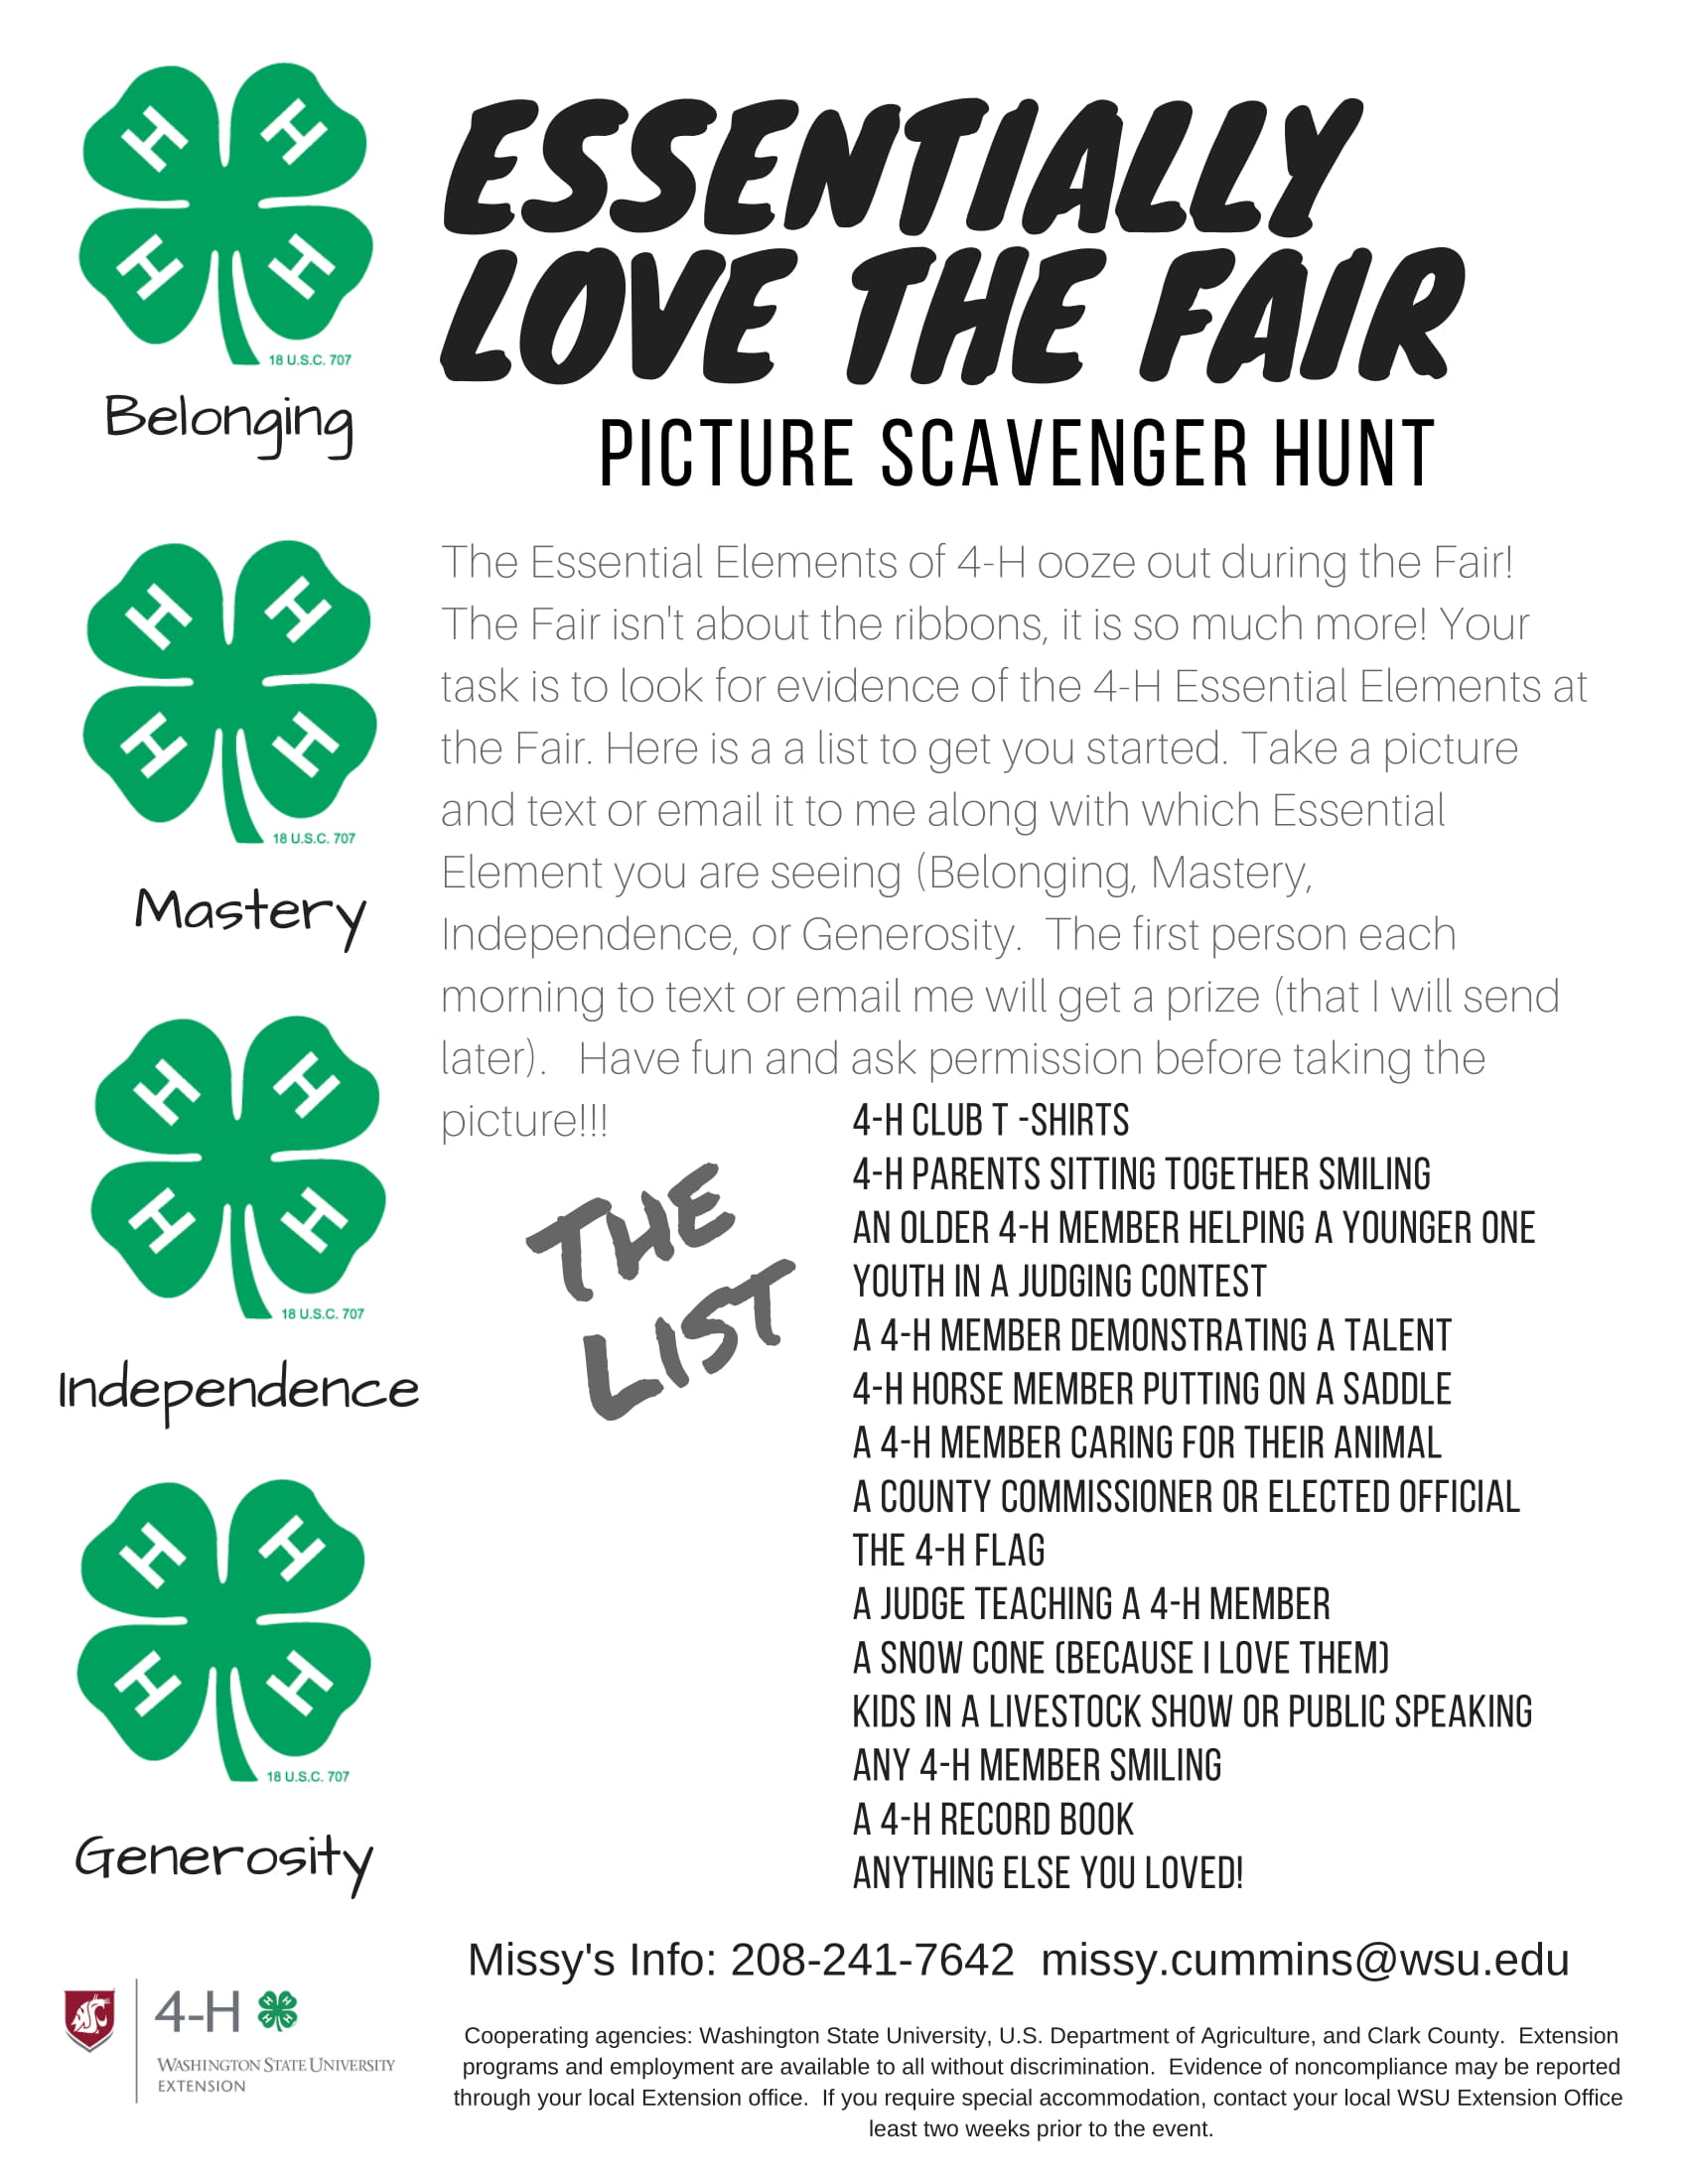 Scavenger Hunt List >> Essentially Love The Fair Scavenger Hunt Klickitat County